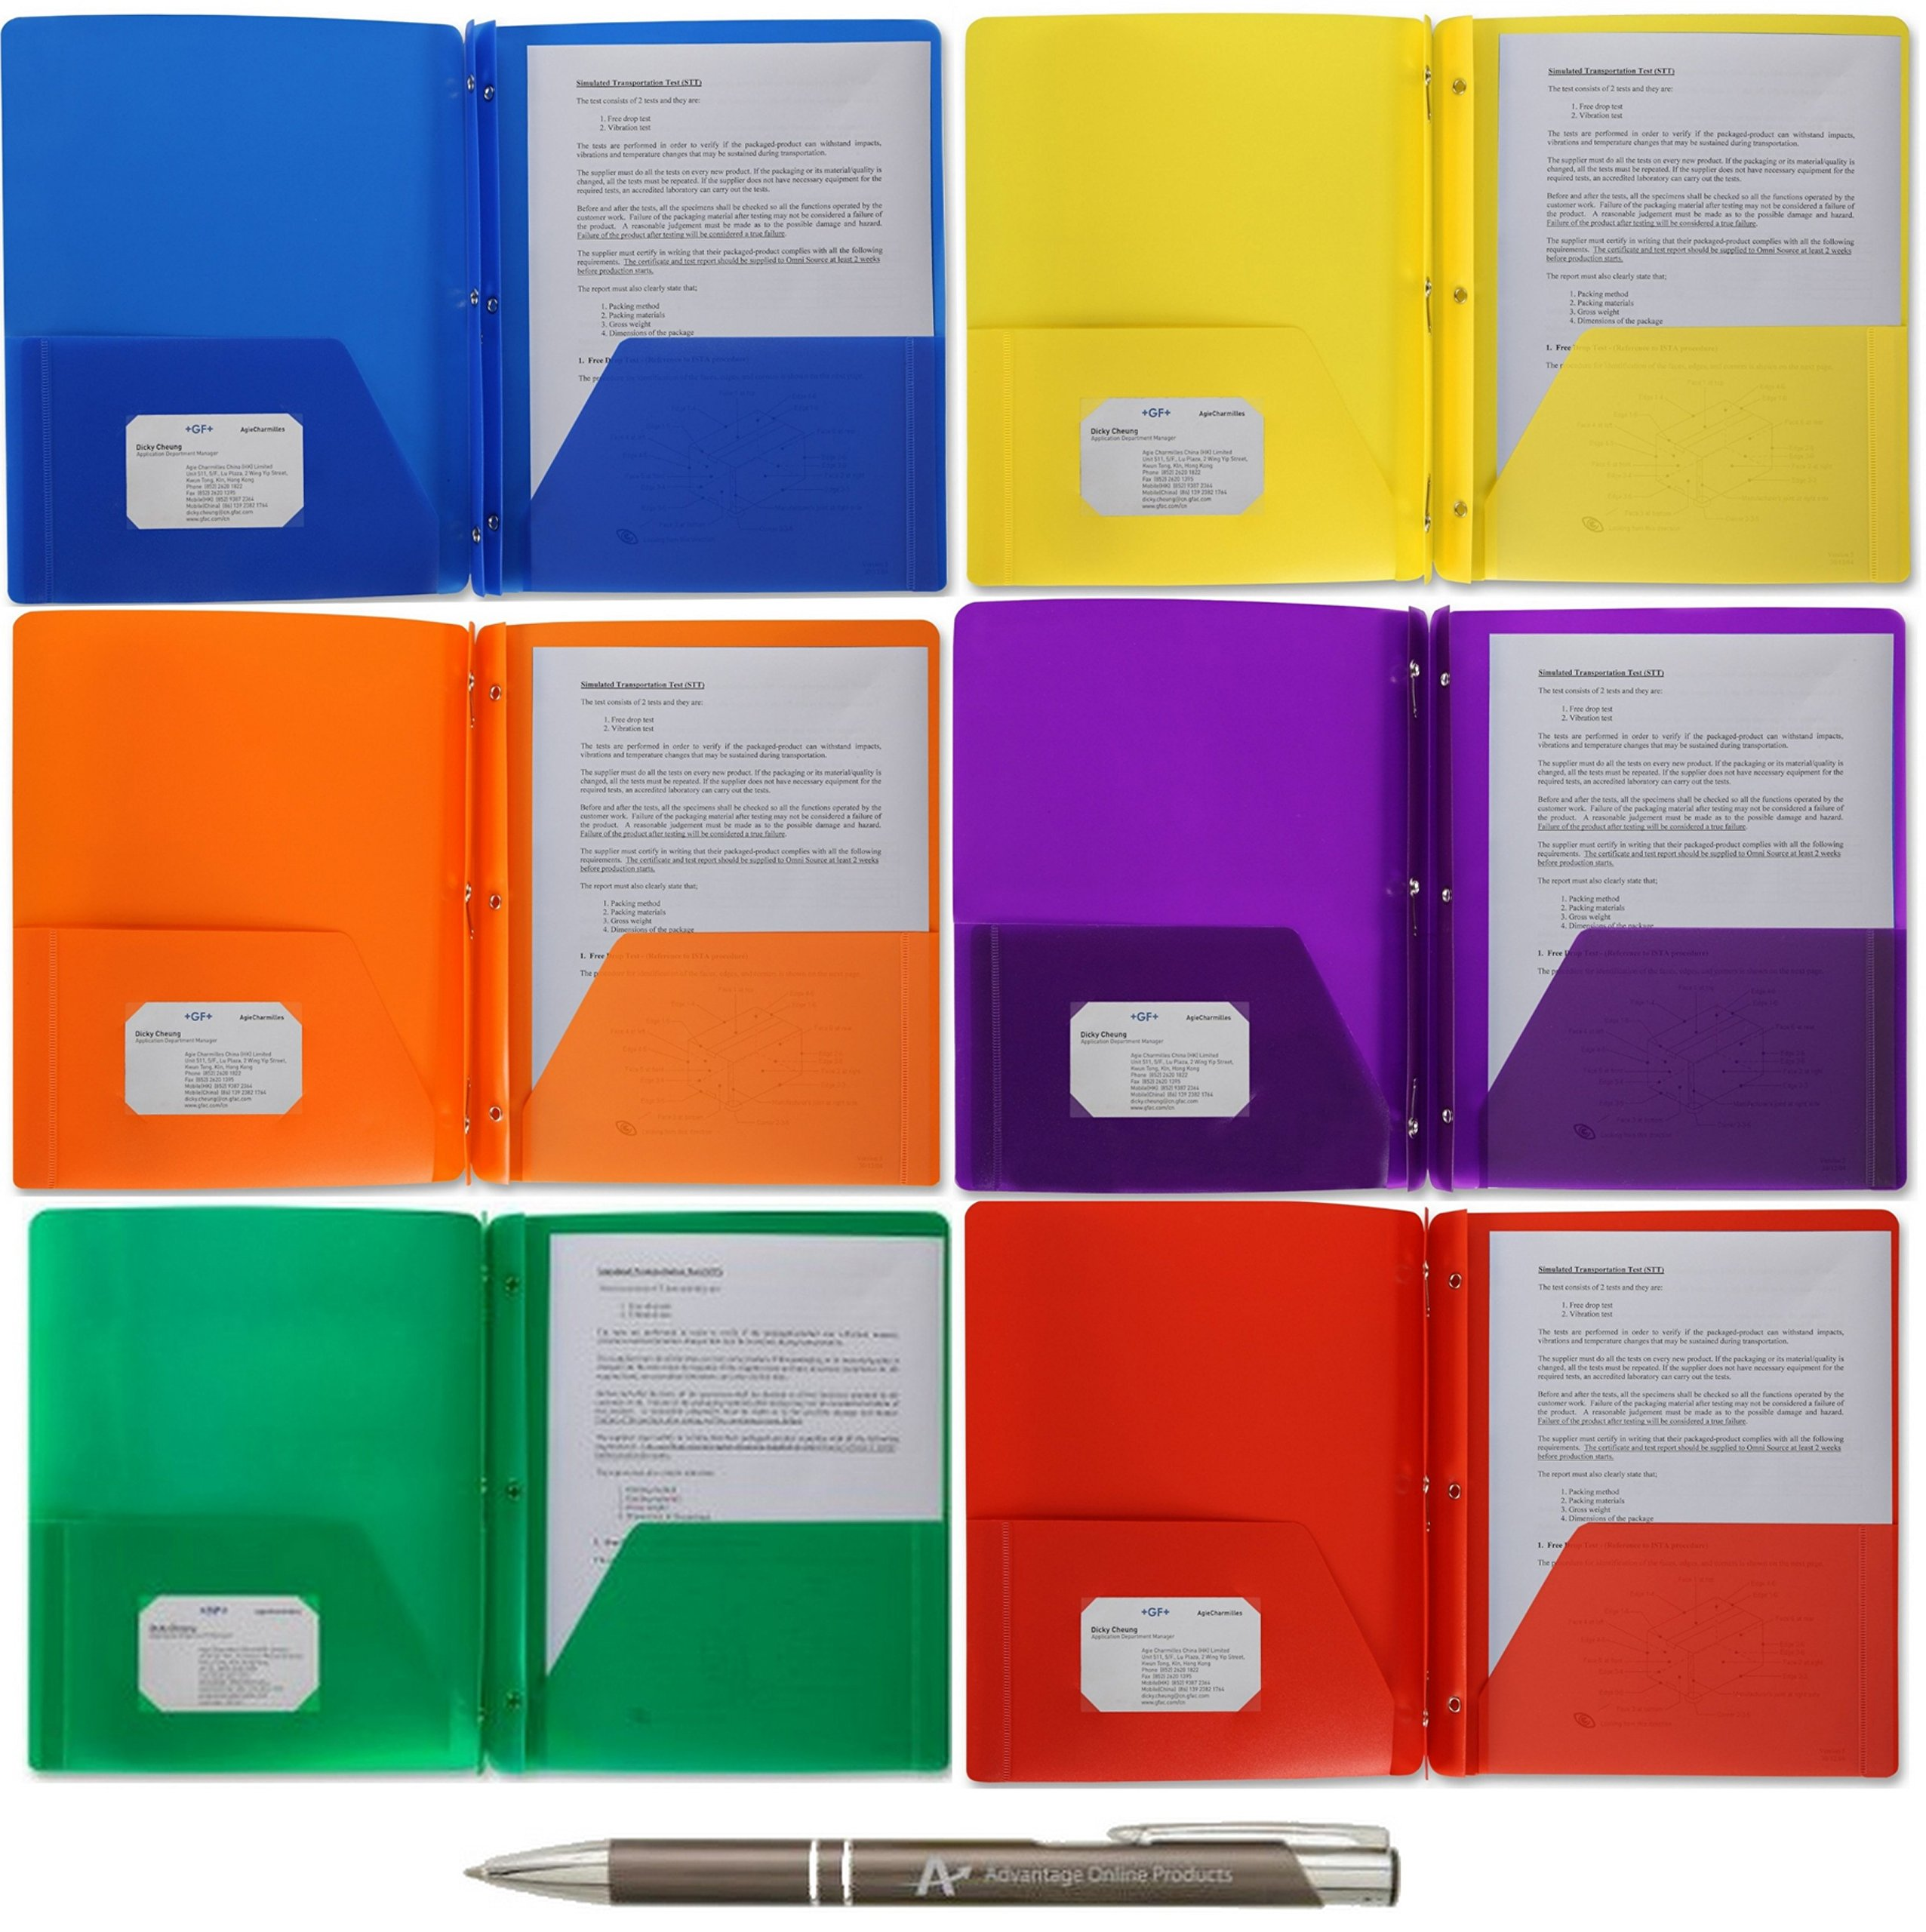 5 Pack BSN Poly Portfolio Report Covers, 3 Hole Punched with Prongs, 8.5 x 11, 5 Pack Assorted Colors with Bonus AdvantageOP Black and Chrome Retractable Pen